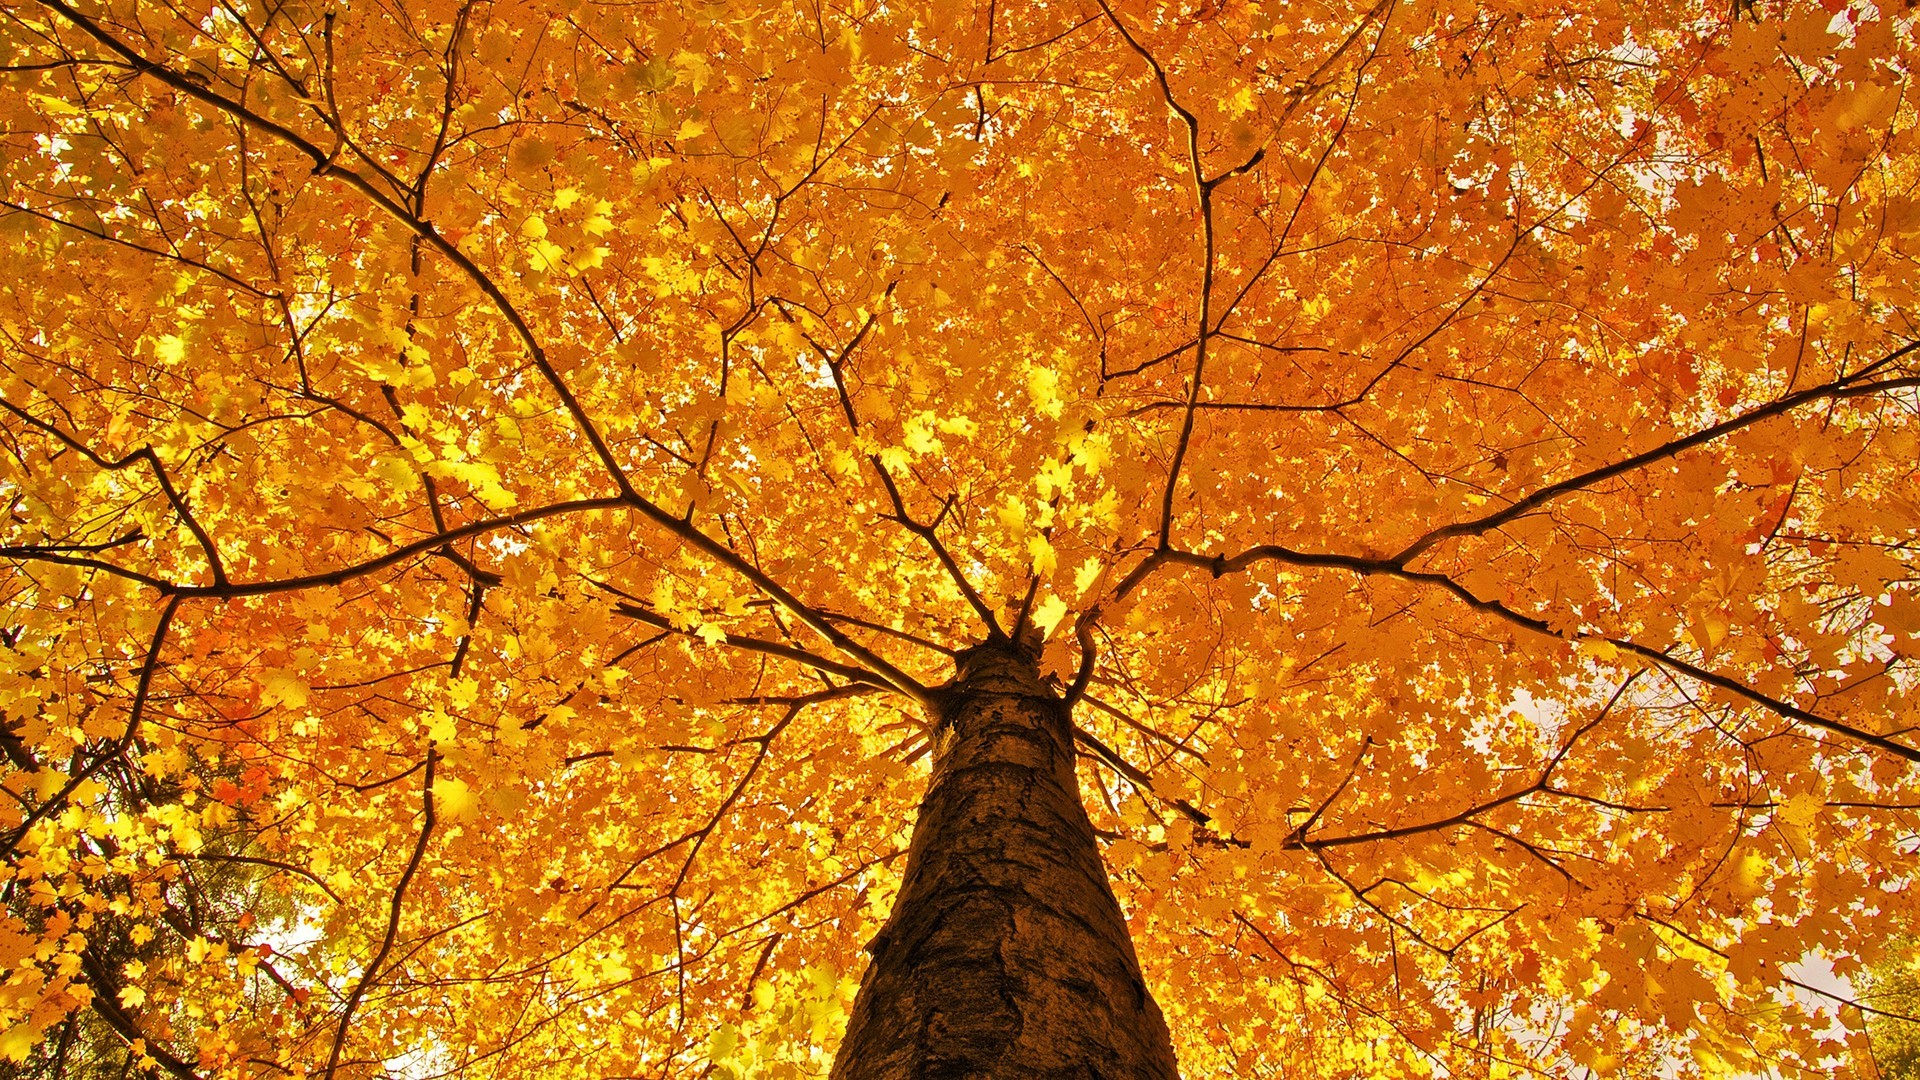 General nature trees leaves branch fall maple leaves yellow  worm's eye view